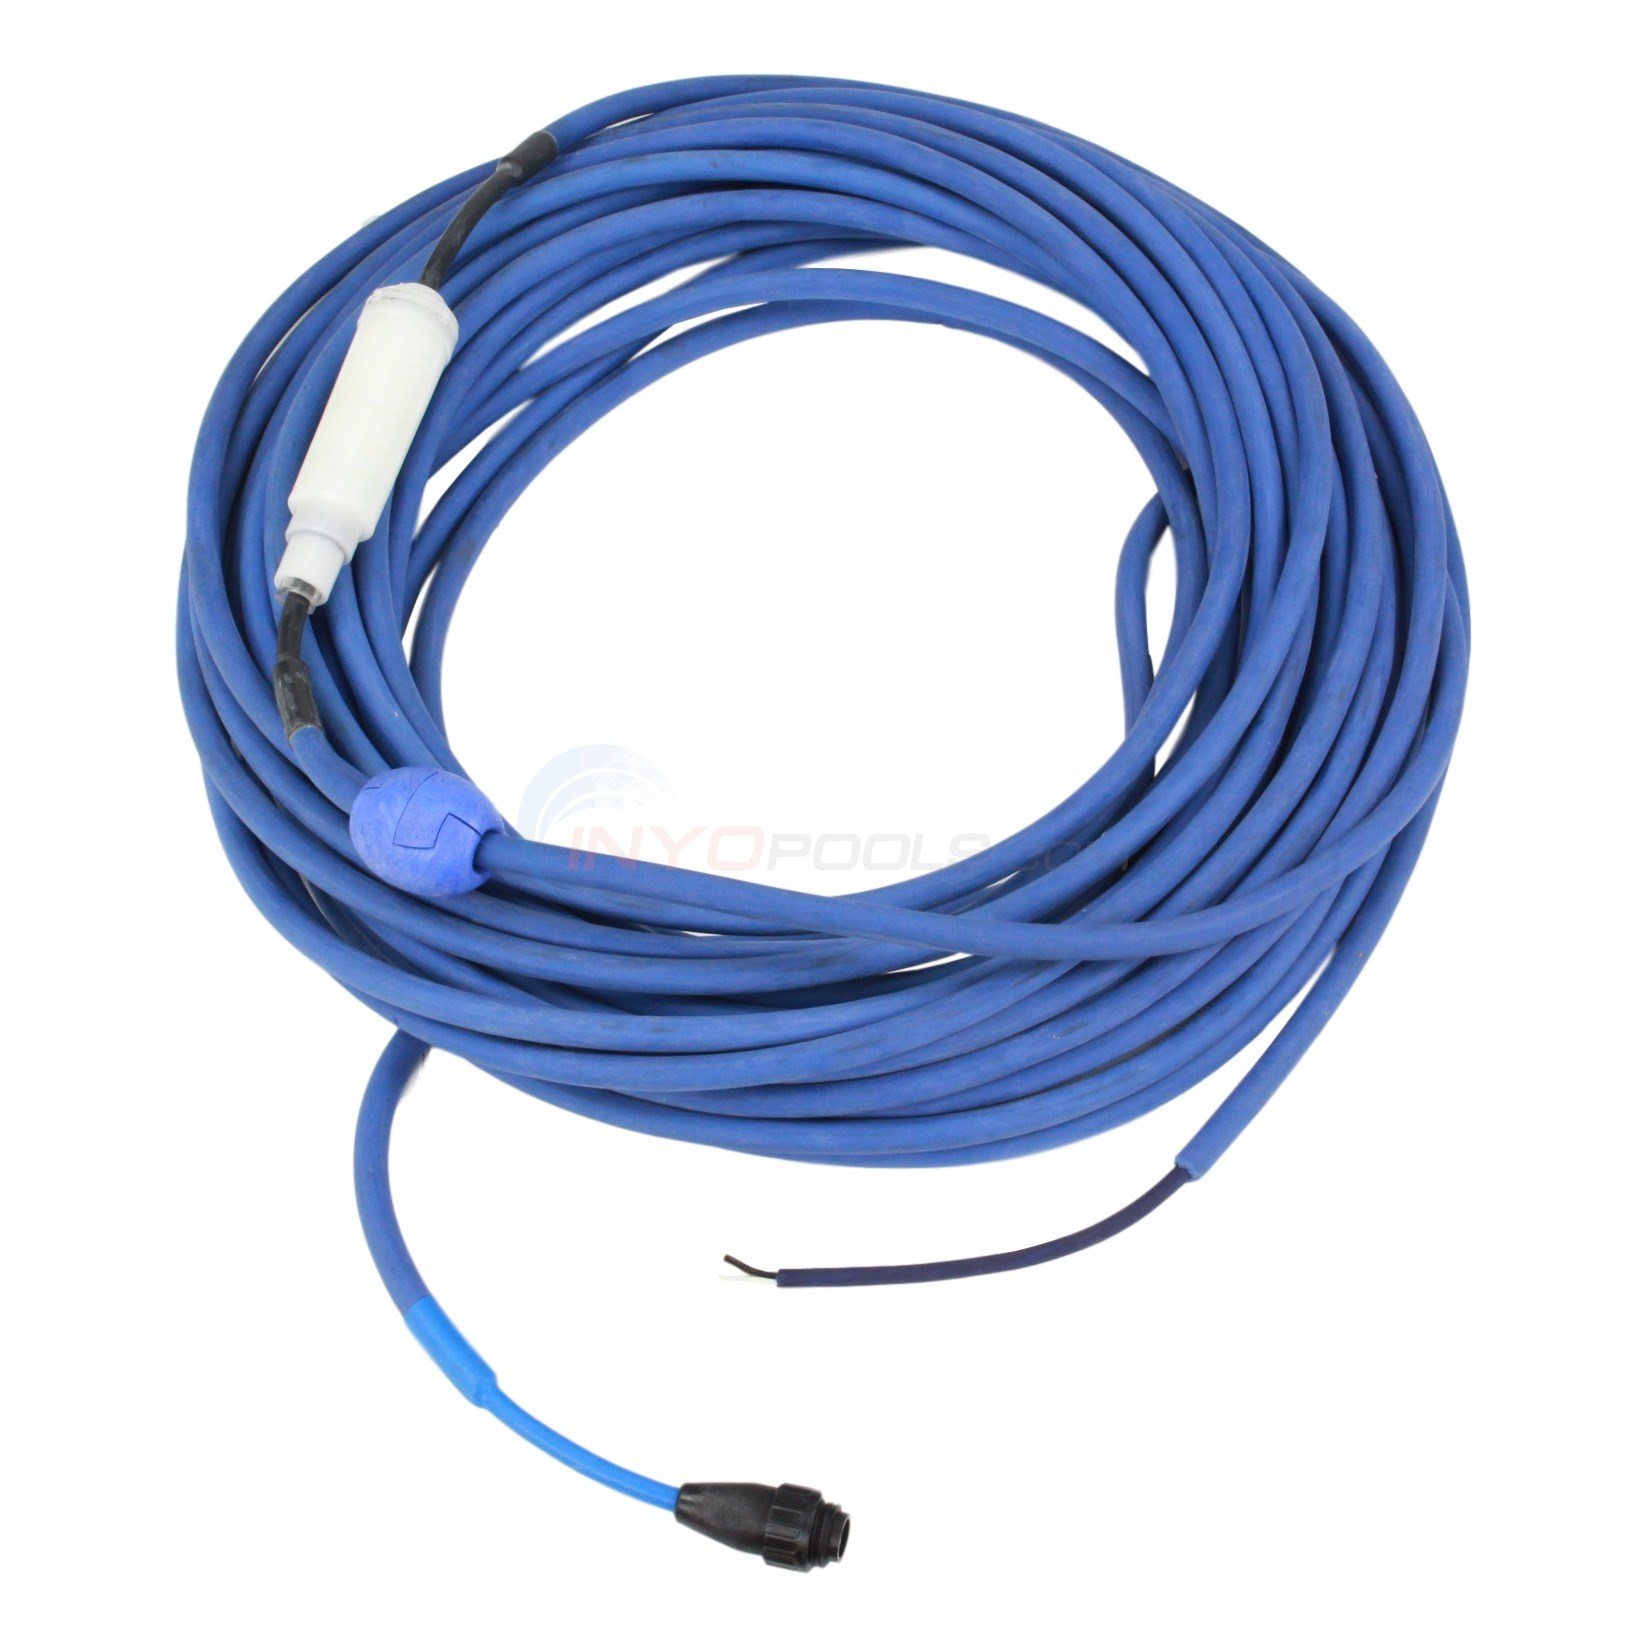 Cable+swivel Assy-30m' Dynamic